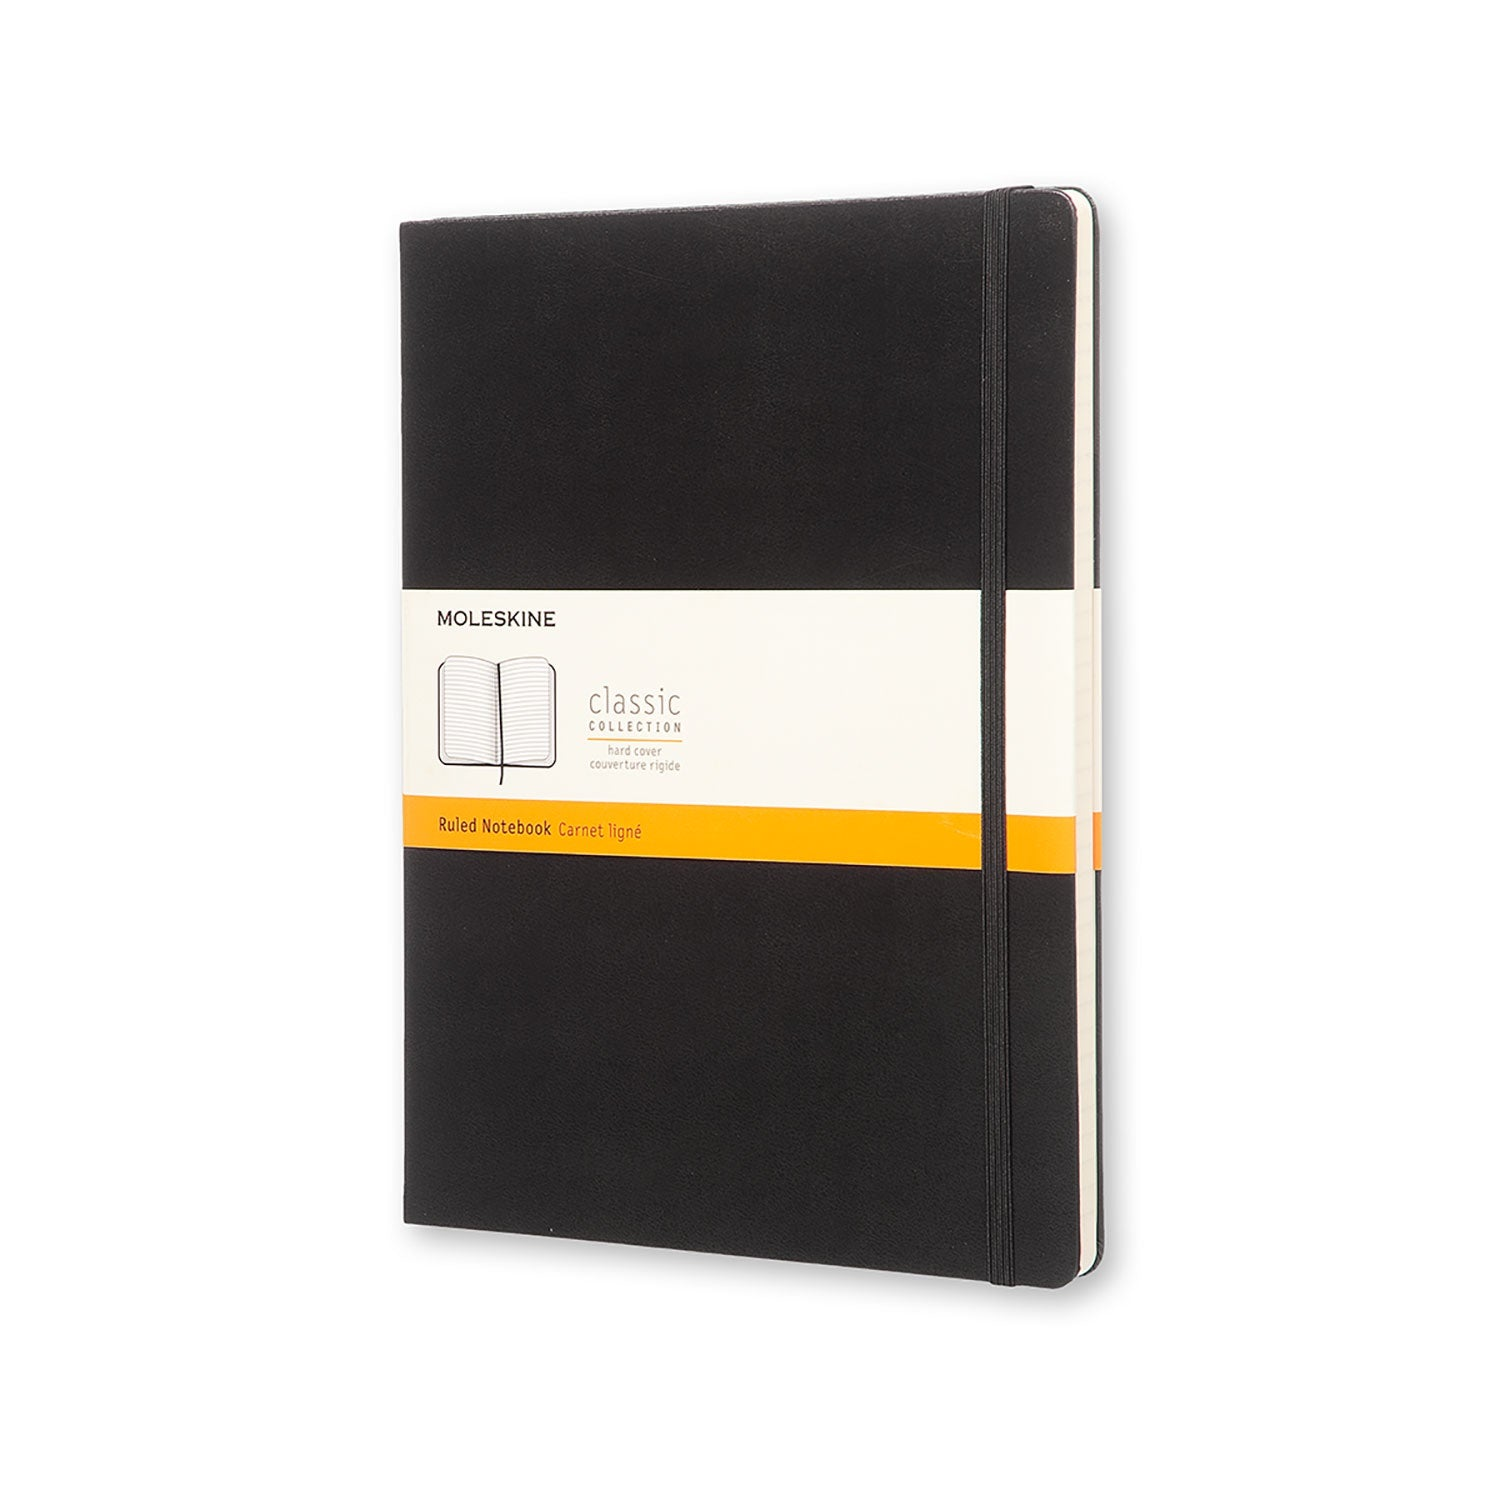 Extra-Large Hard Cover Notebook